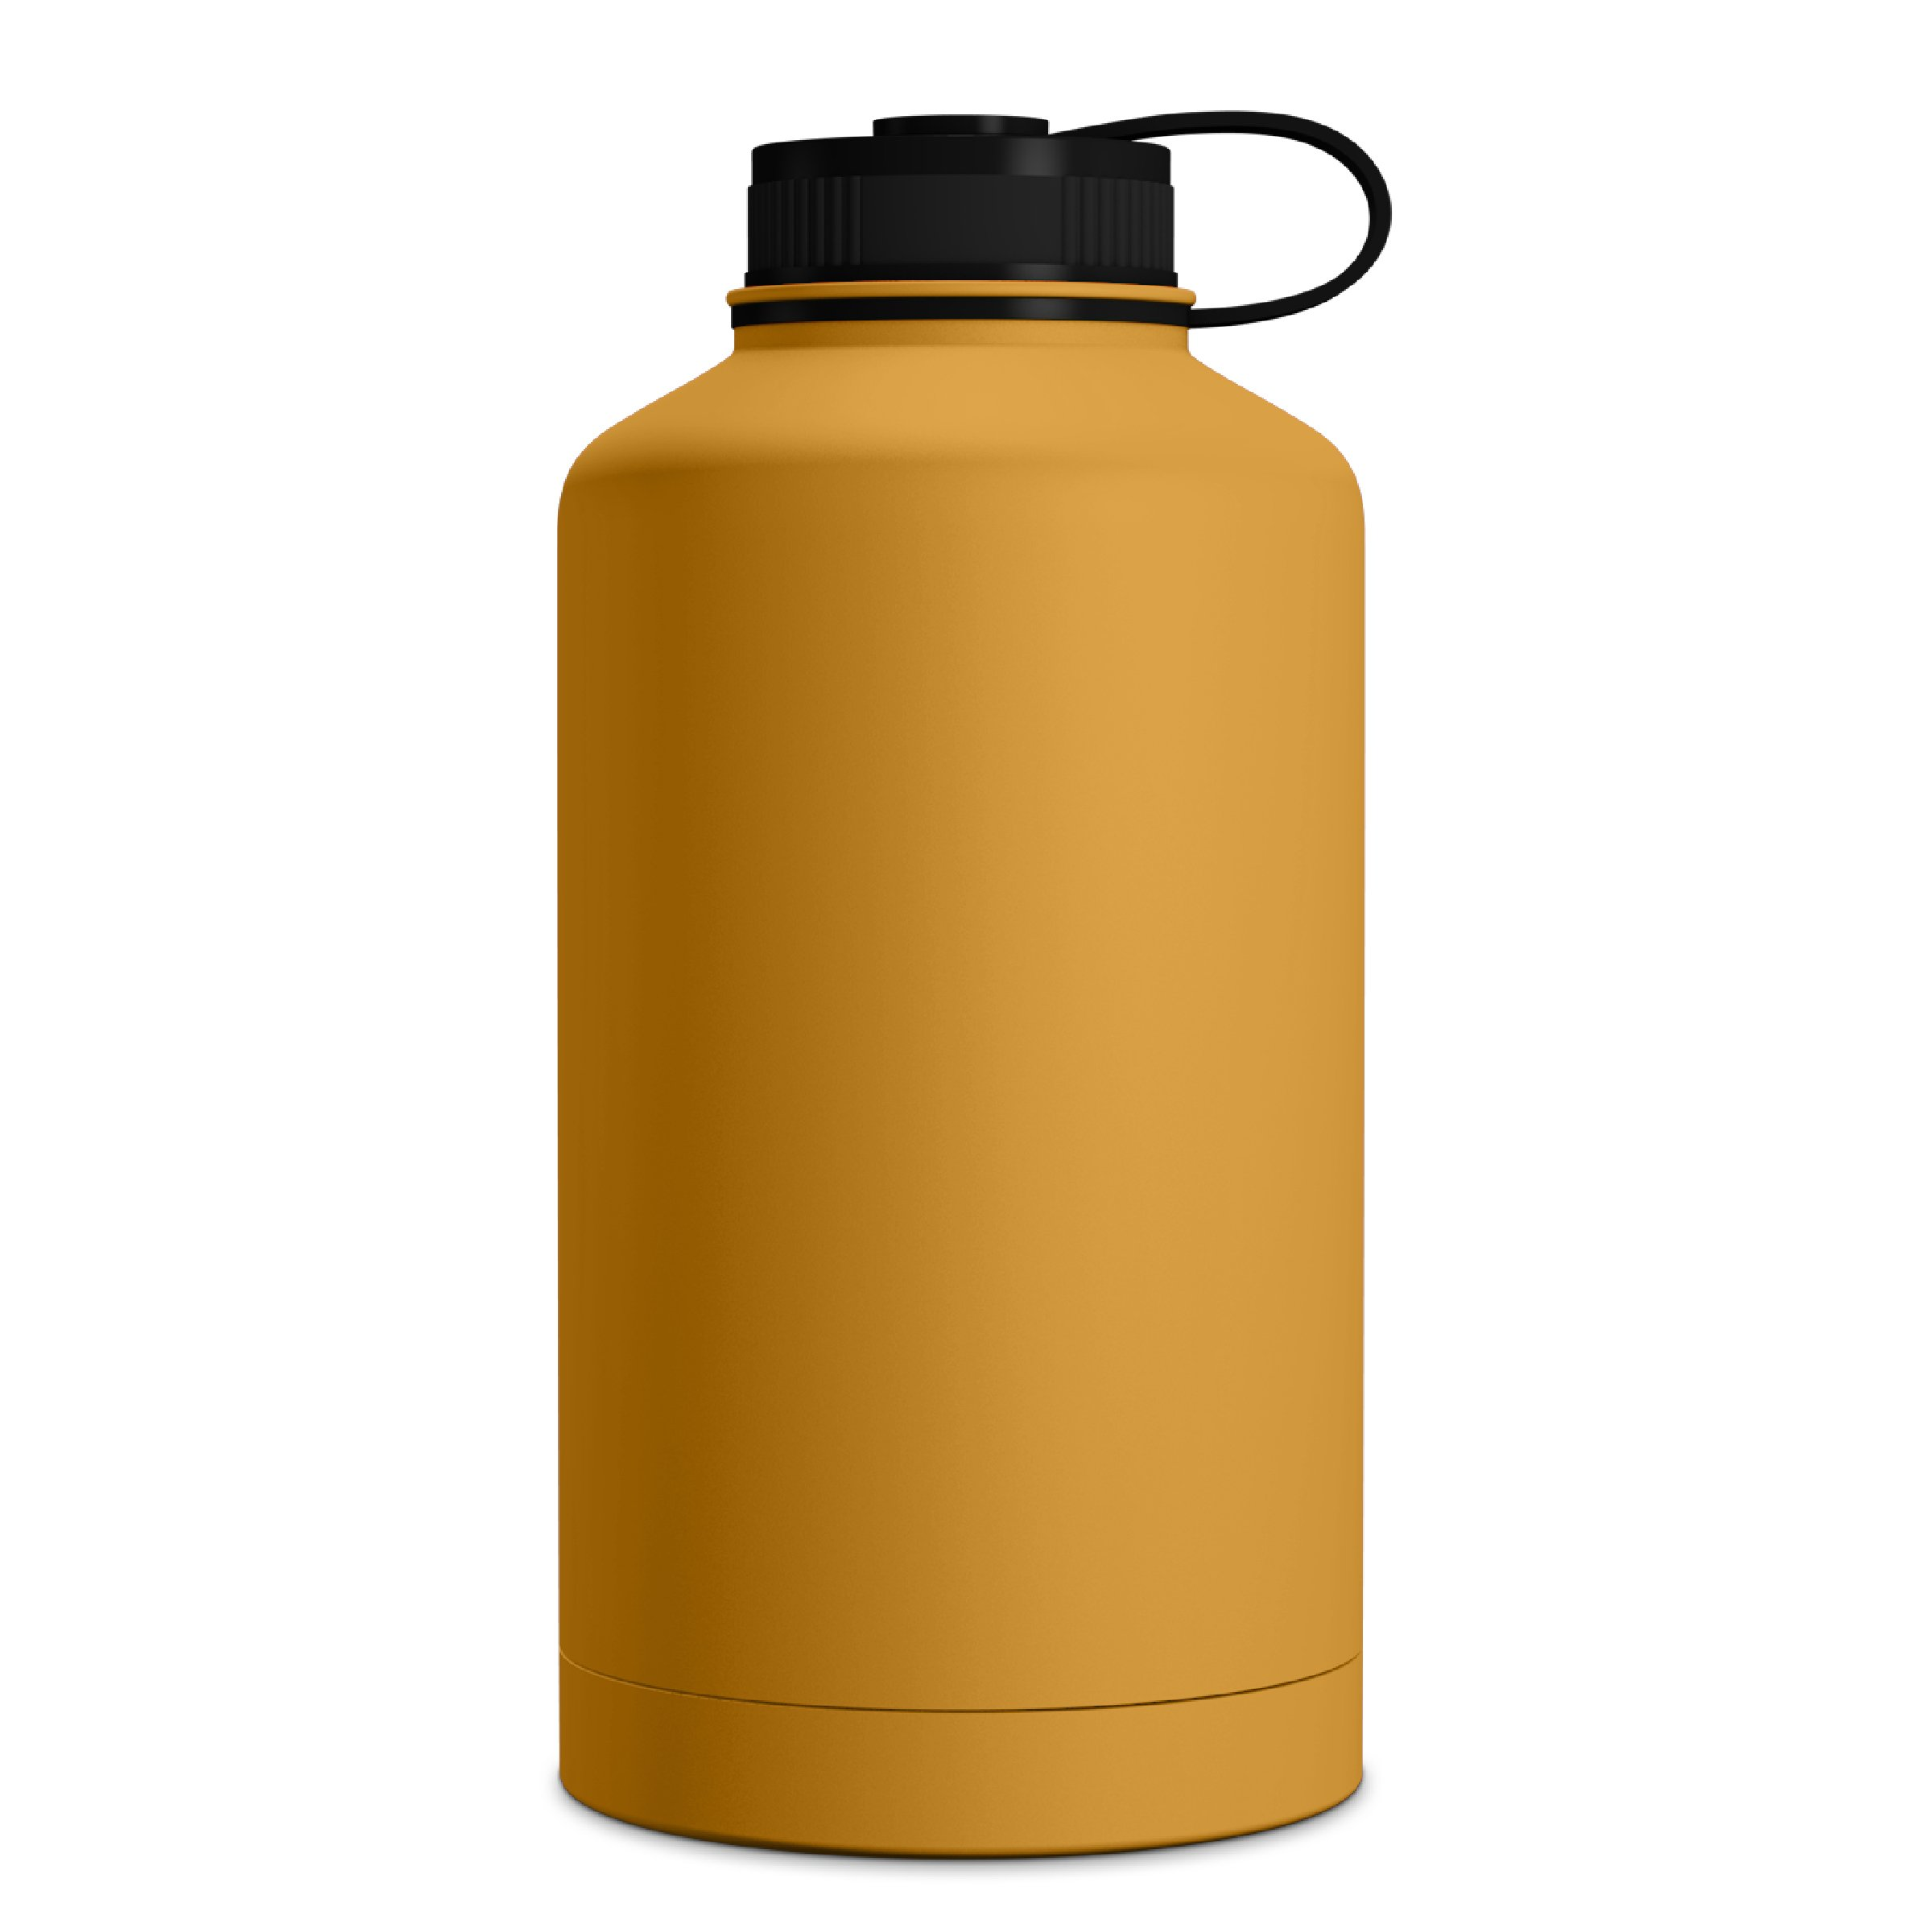 GEO 64oz Double Wall Vacuum Insulated Stainless Steel Leak Proof Sports Water Bottle, Wide Mouth w/BPA Free Screw Cap (Mango)